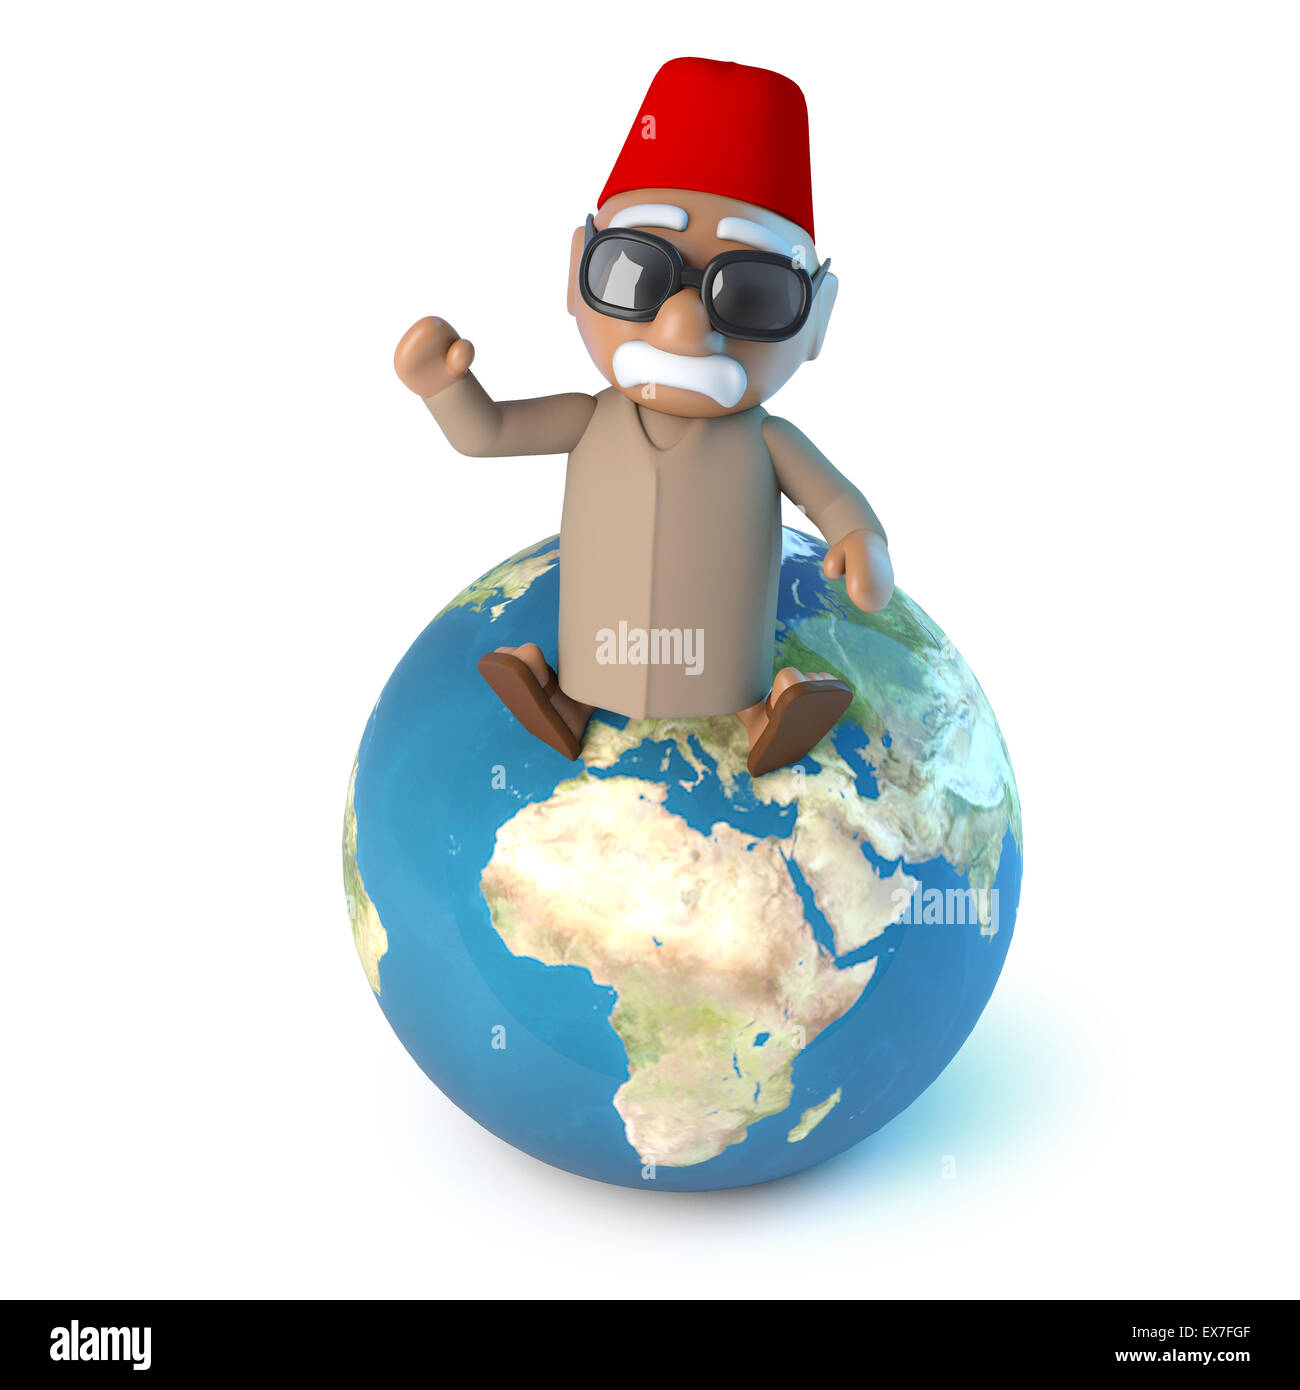 3d render of a Moroccan sitting on a globe of the Earth. - Stock Image